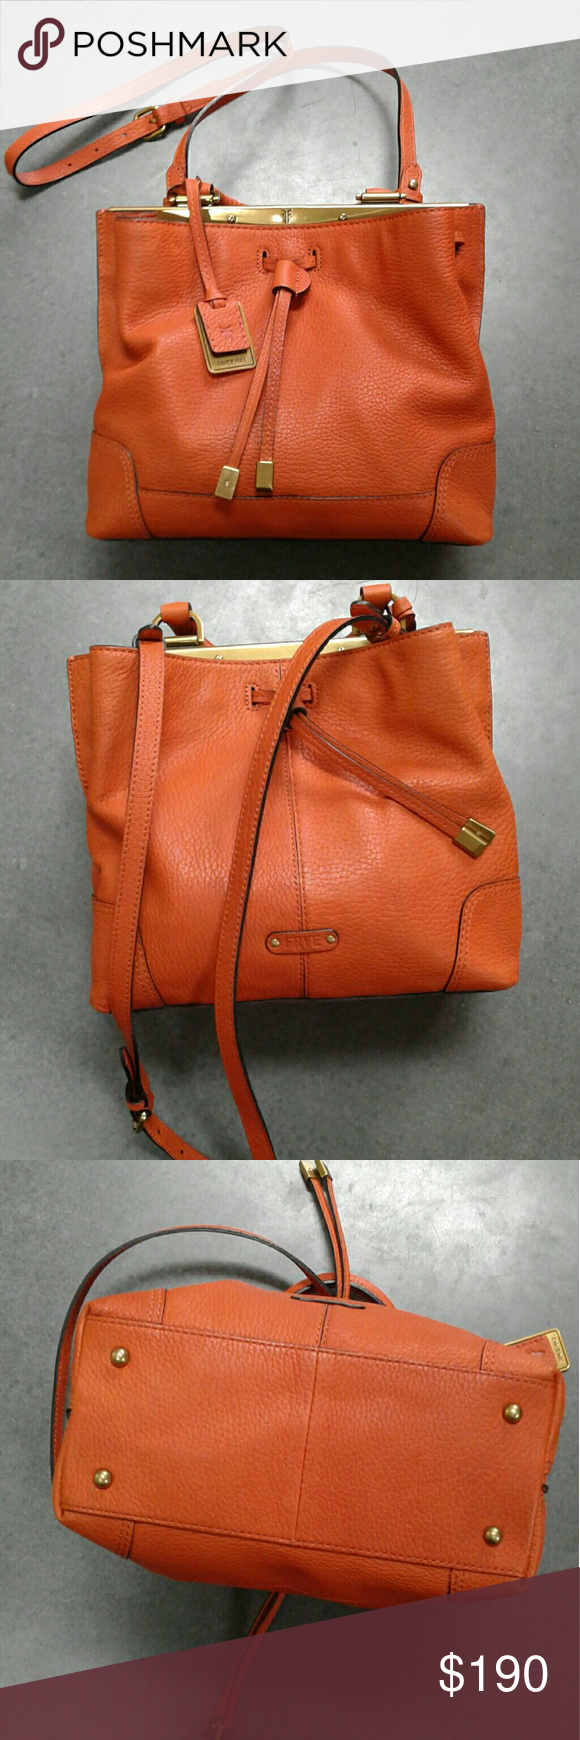 """Frye Fay small crossbody drawstring bag In like new condition. Worn only a couple times. Orange color This small drawstring bag proves it with its chic, built-in frame, artisanal woven handles, and stylized hardware. Made in Italy from incredibly soft, pebbled goat leather, this petite bag makes an impression wherever it goes. - Antique metal hardware - 8 1/2"""" height - 8 1/2"""" width - 21"""" strap drop - Three interior pockets - Drawstring closure Frye Bags Crossbody Bags"""